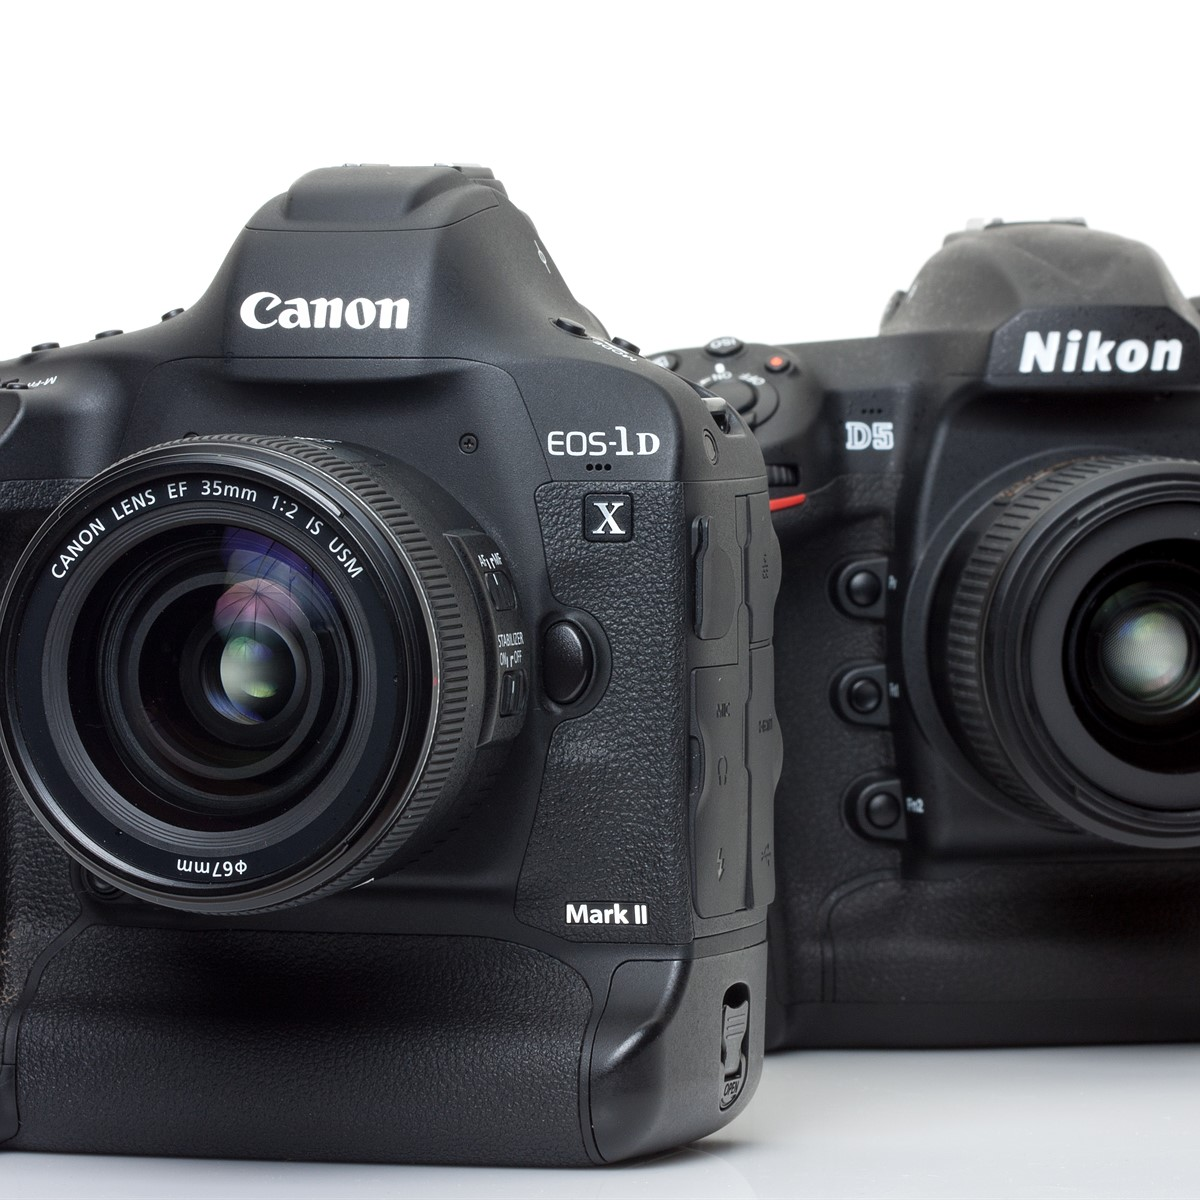 Flagships compared: Canon EOS-1D X Mark II versus Nikon D5: Digital Photography Review